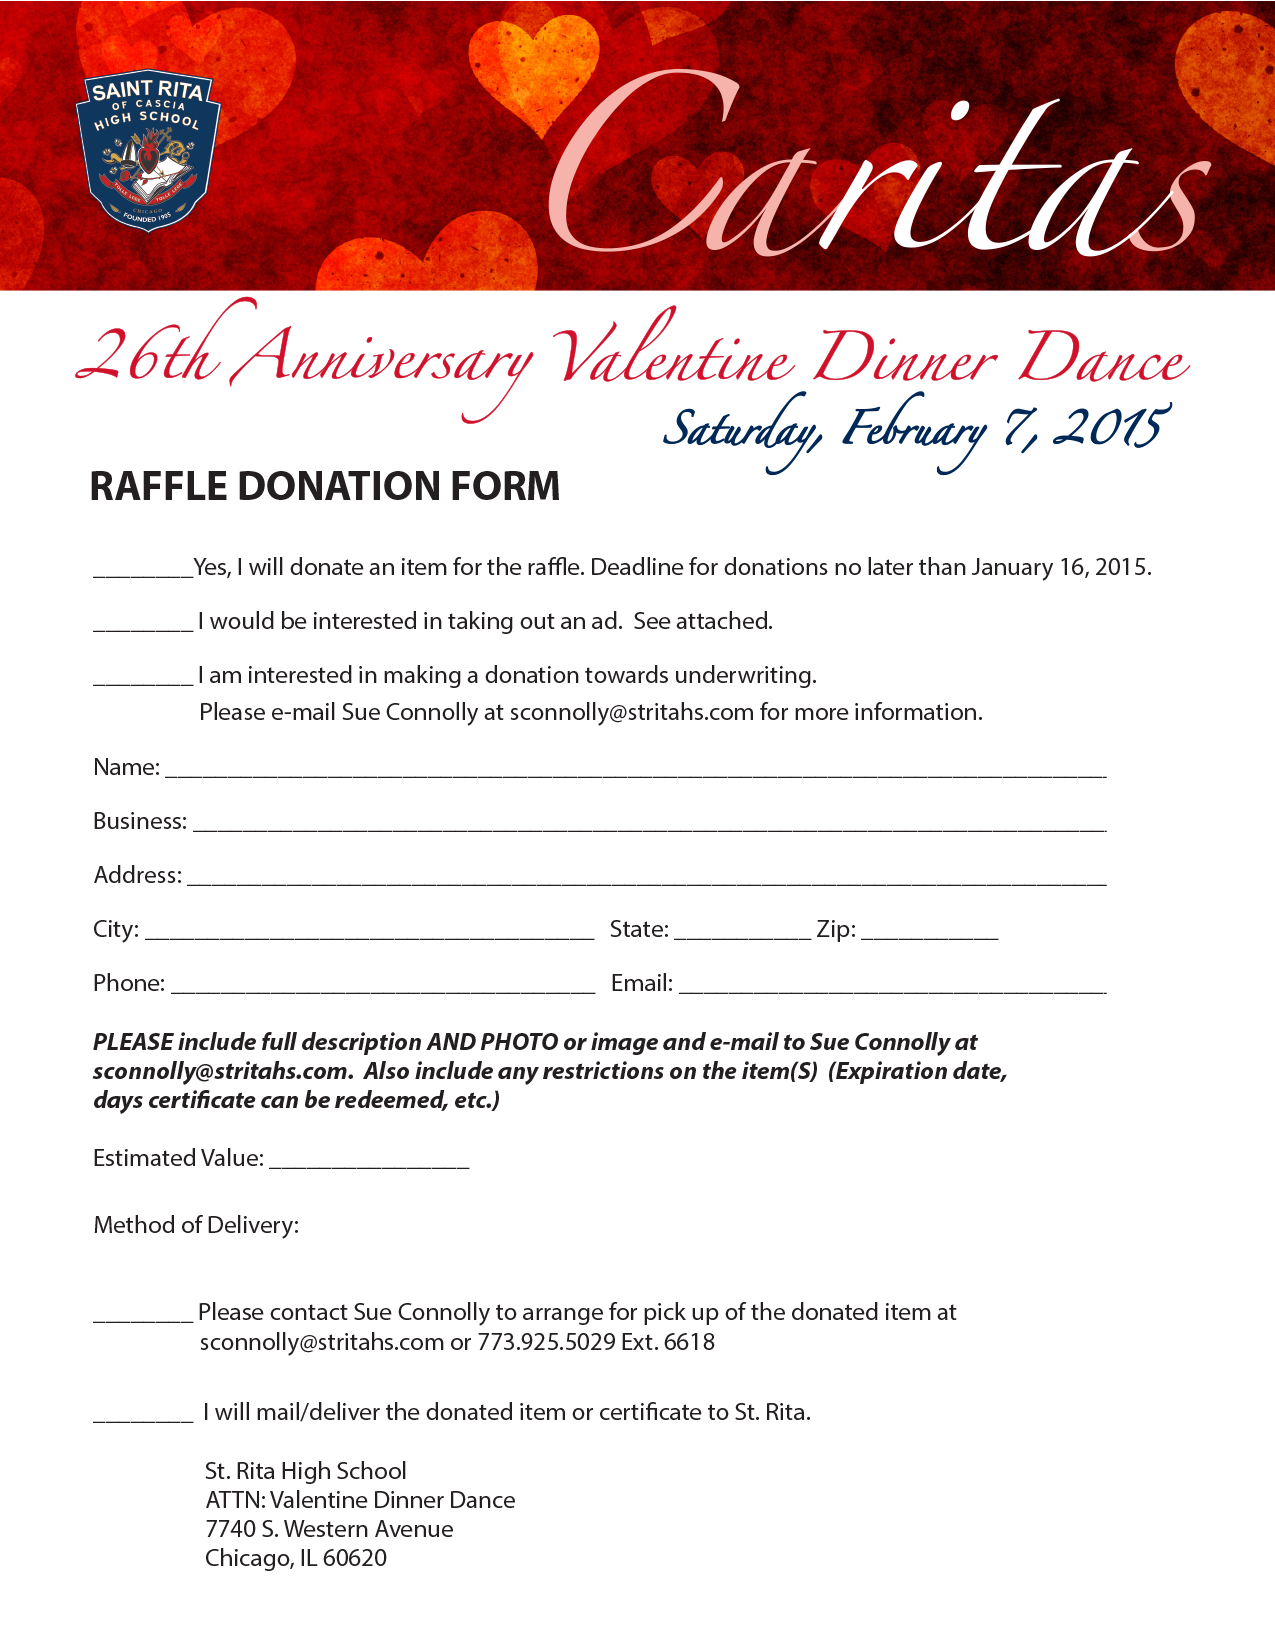 CARITAS DONATION FORM